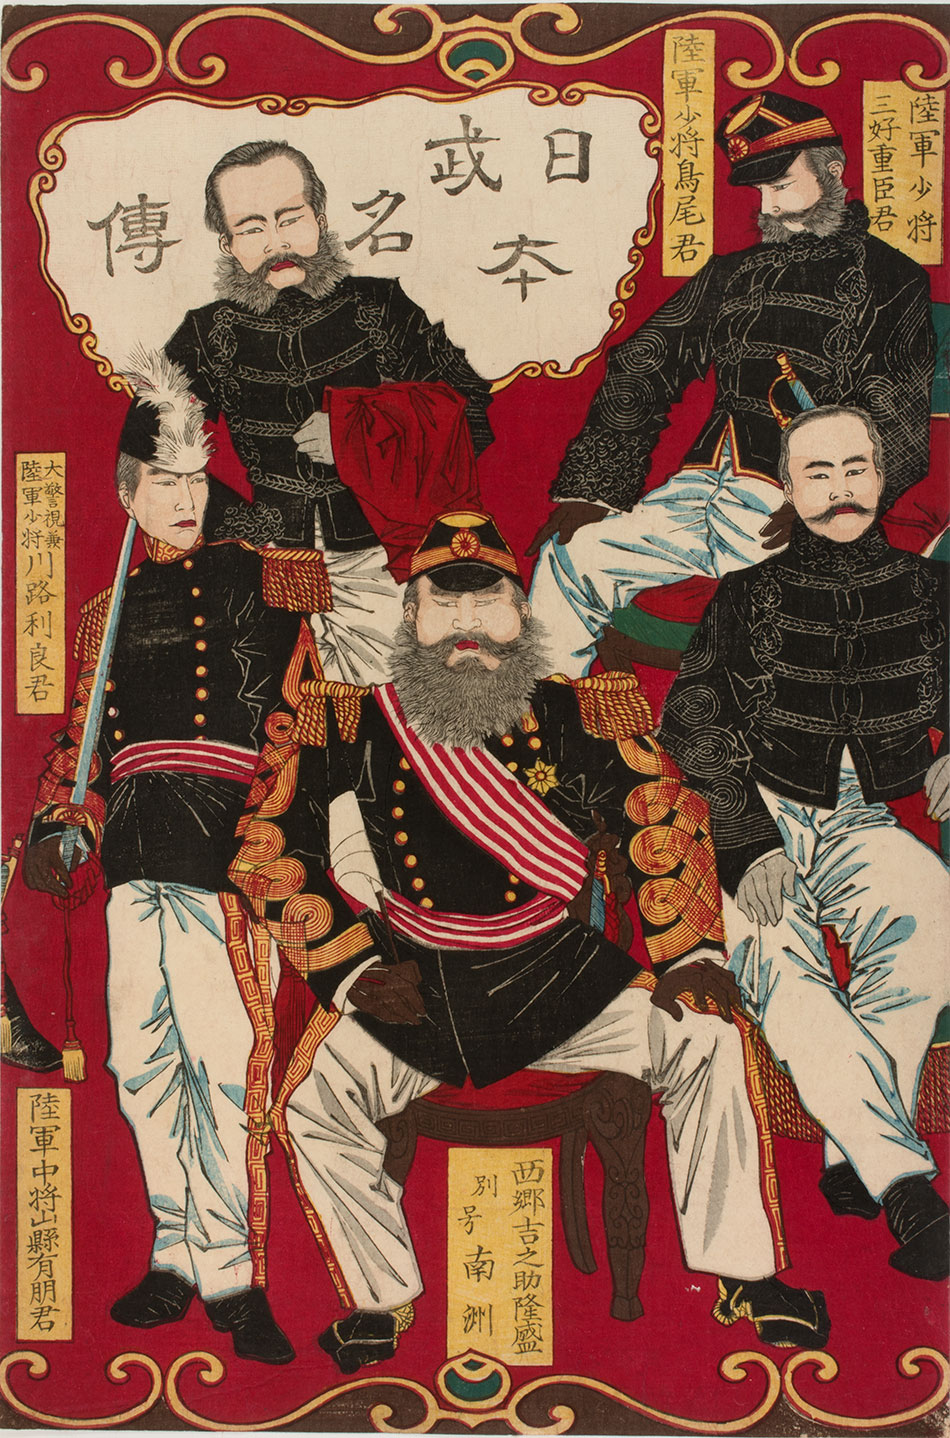 Famous-soldiers-of-Japan-1989-47-66b-abeno_by-Tsukioka-Yoshitoshi_Philadelphia-Museum-of-Art_950-W